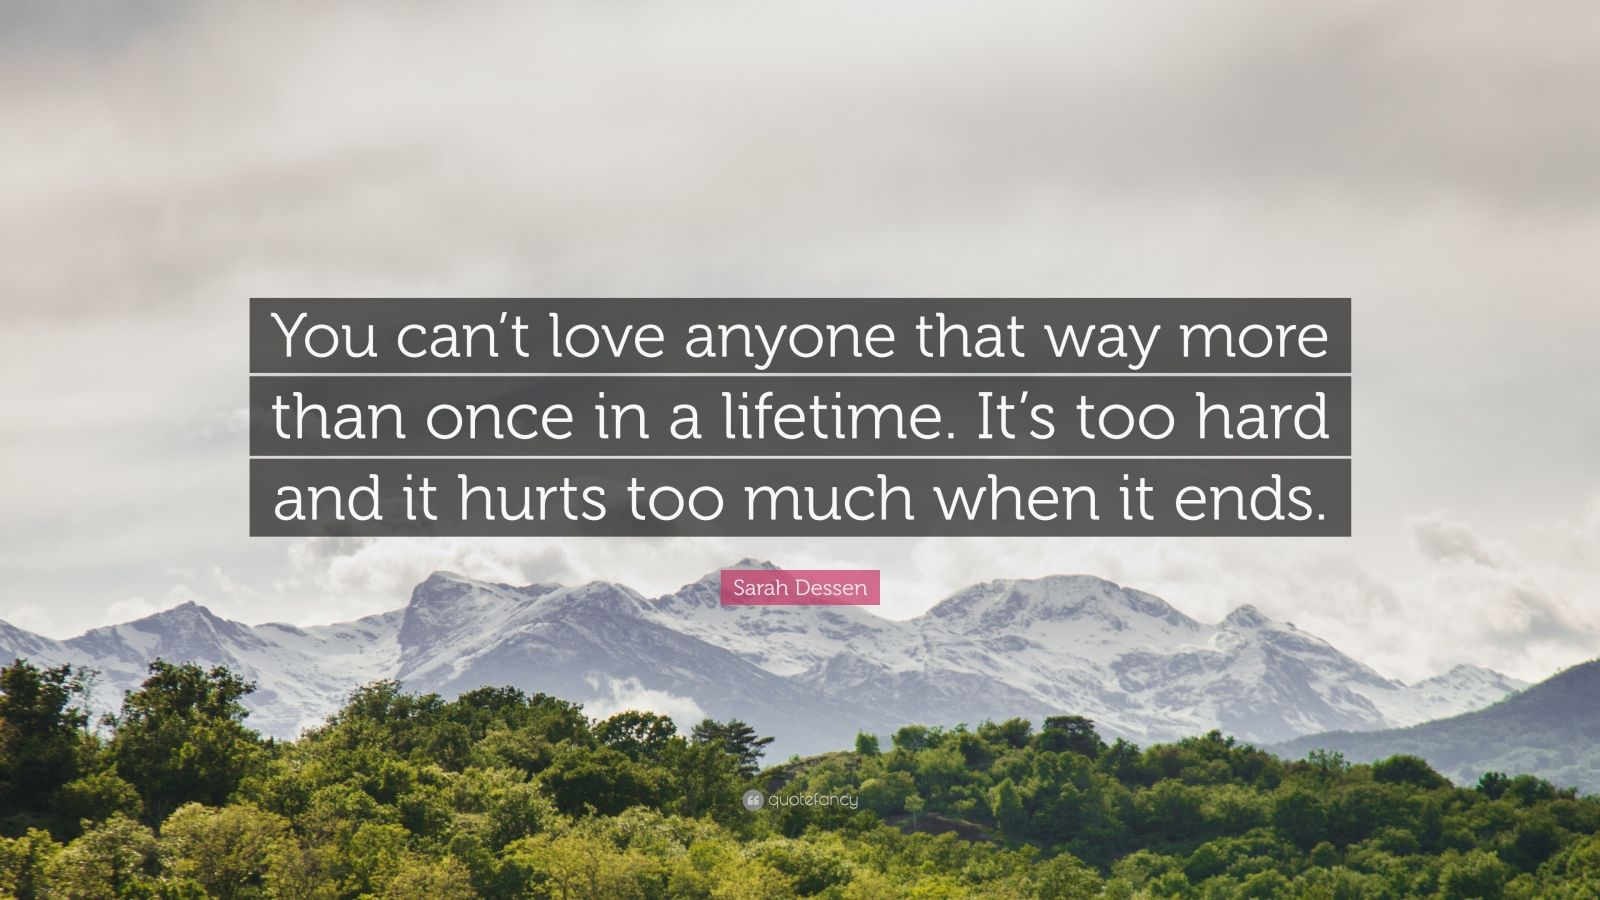 """Sarah Dessen Quote: """"You can't love anyone that way more than once in a lifetime. It's too hard and it hurts too much when it ends."""""""